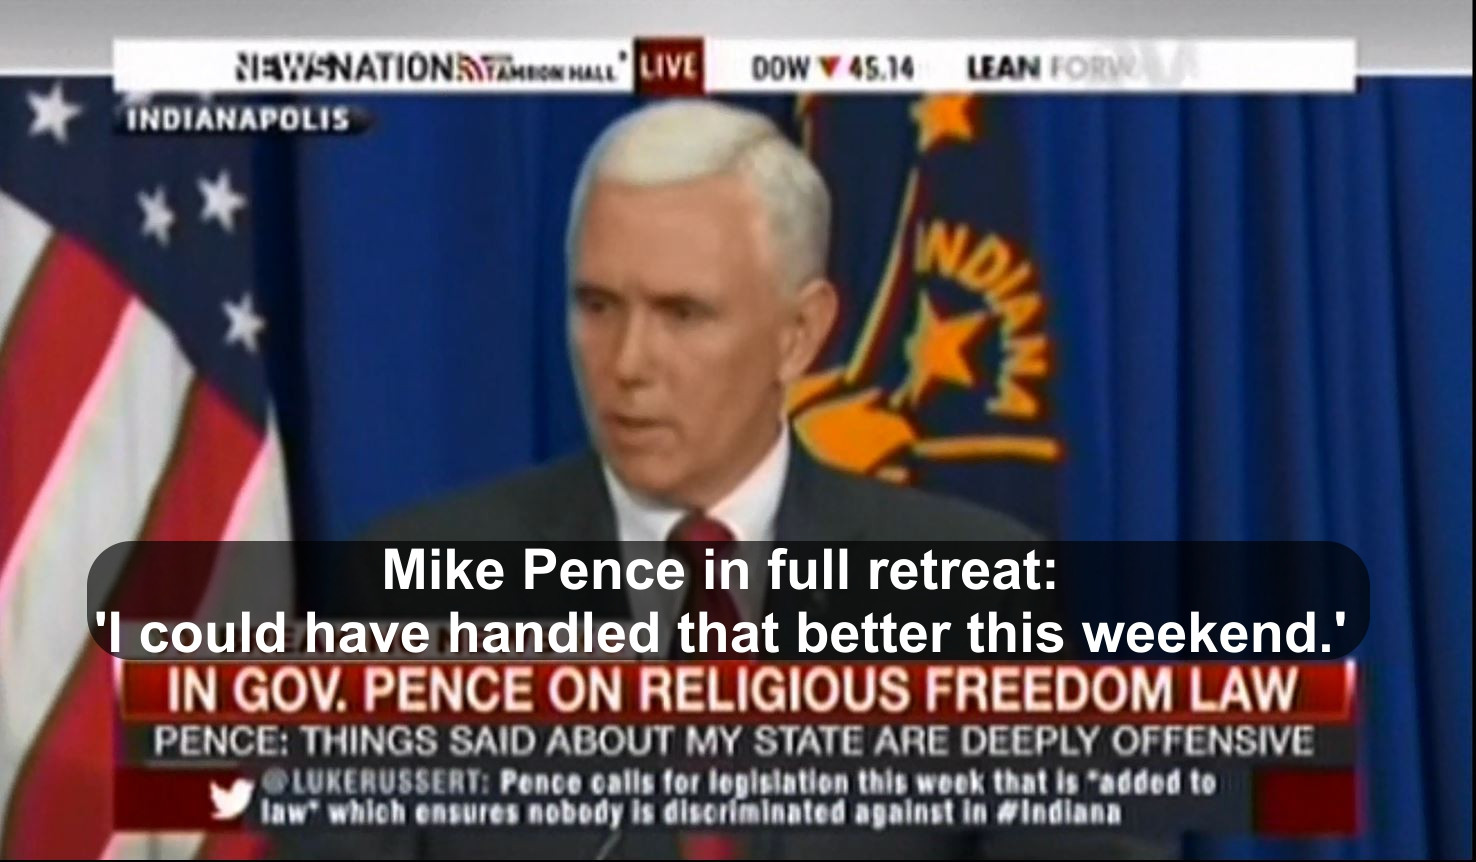 Mike Pence in retreat of Indiana religious restoration act law'